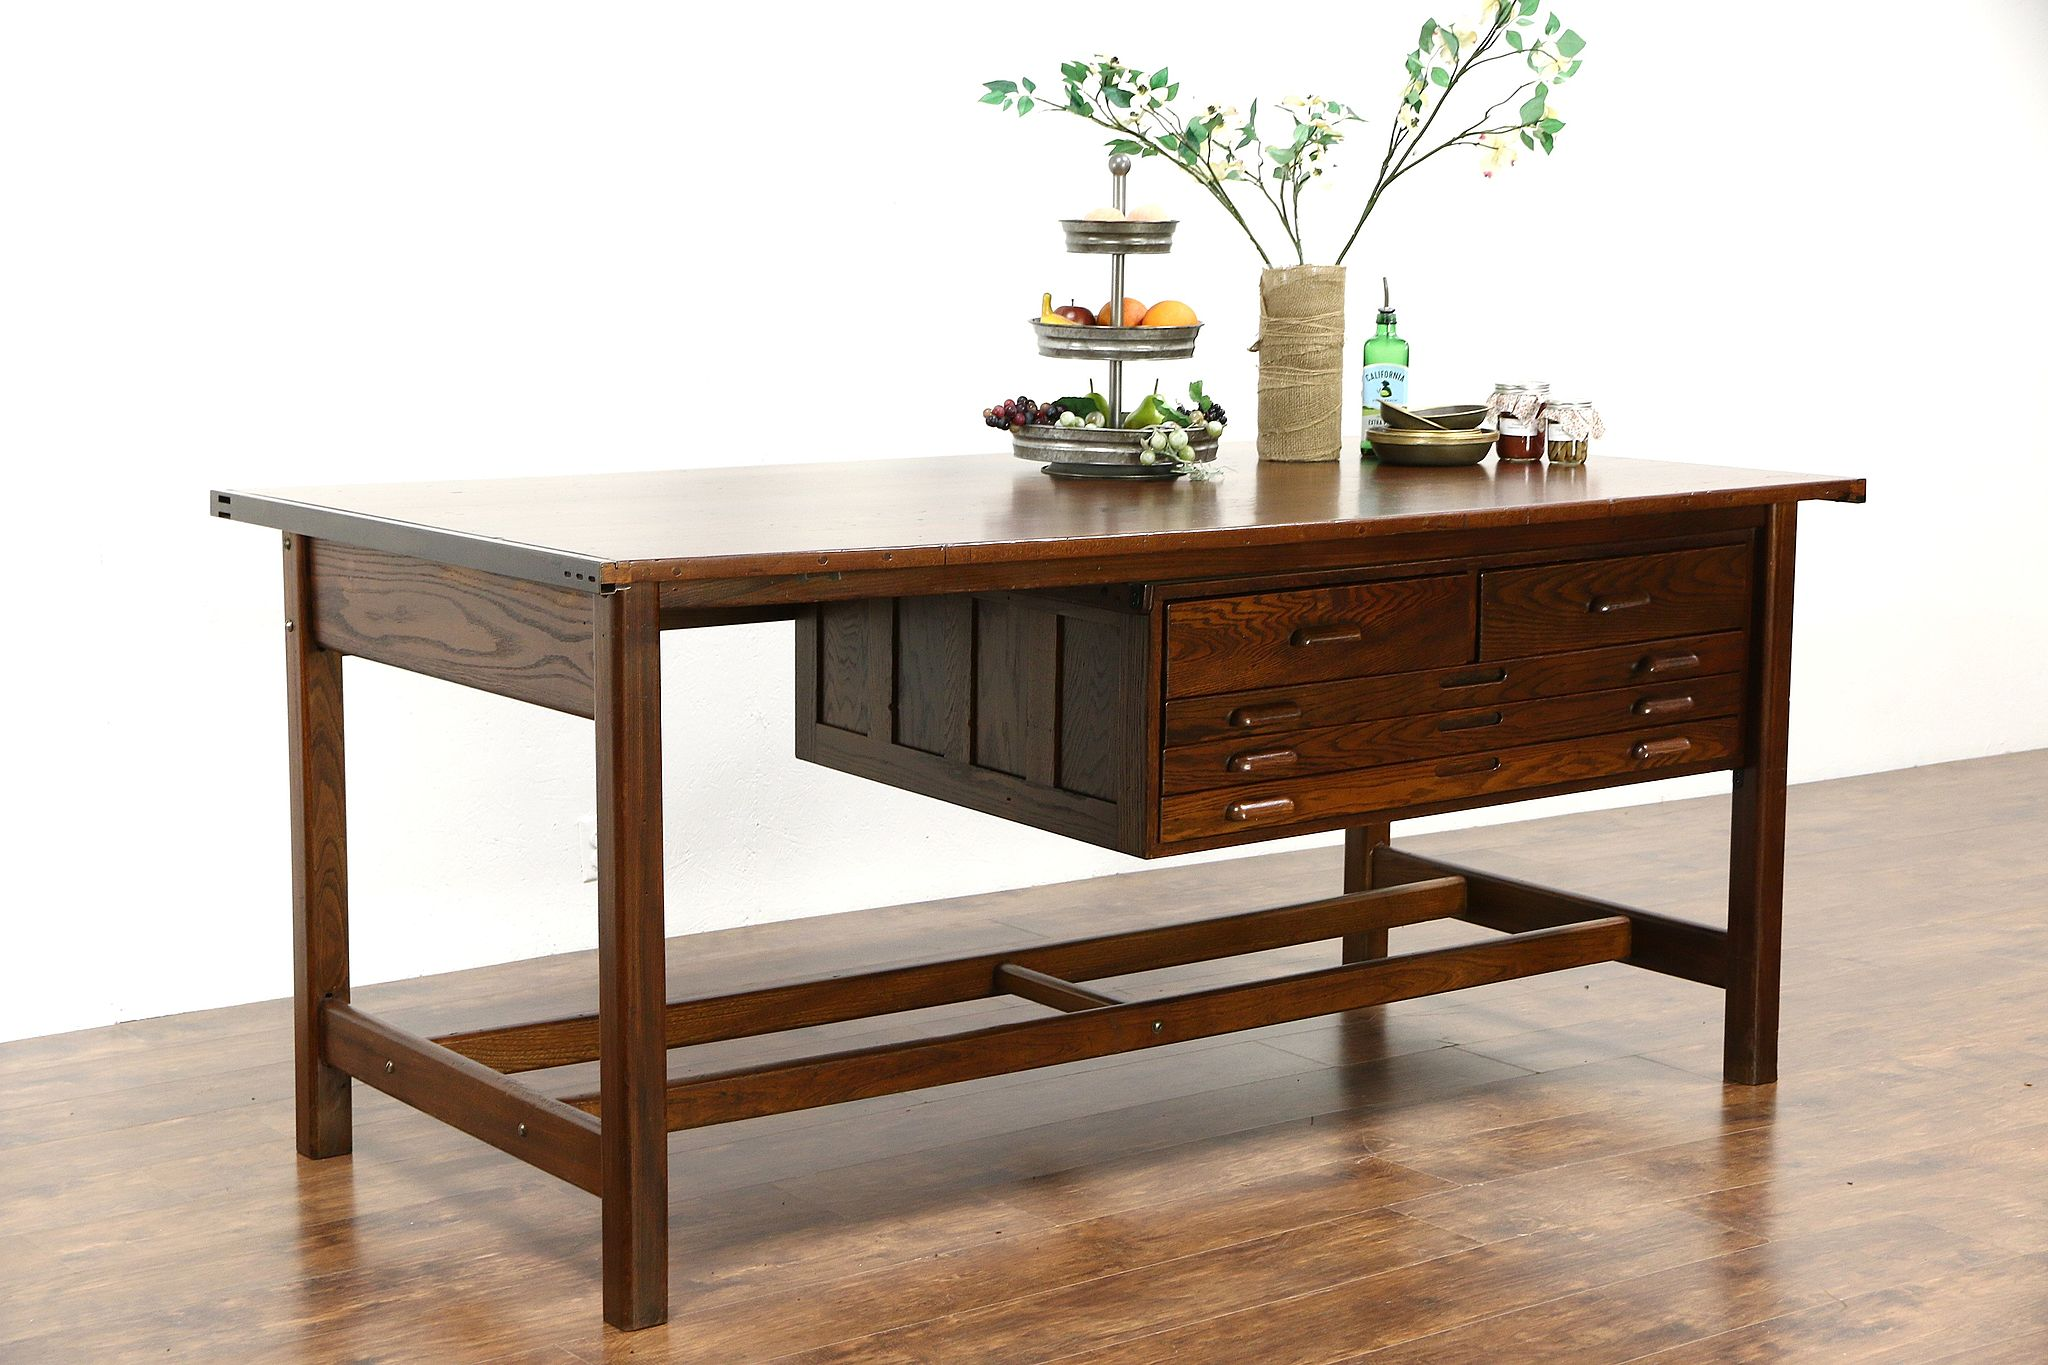 Architect Vintage 7 Drafting Desk Wine Table Kitchen Island Signed Hamilton